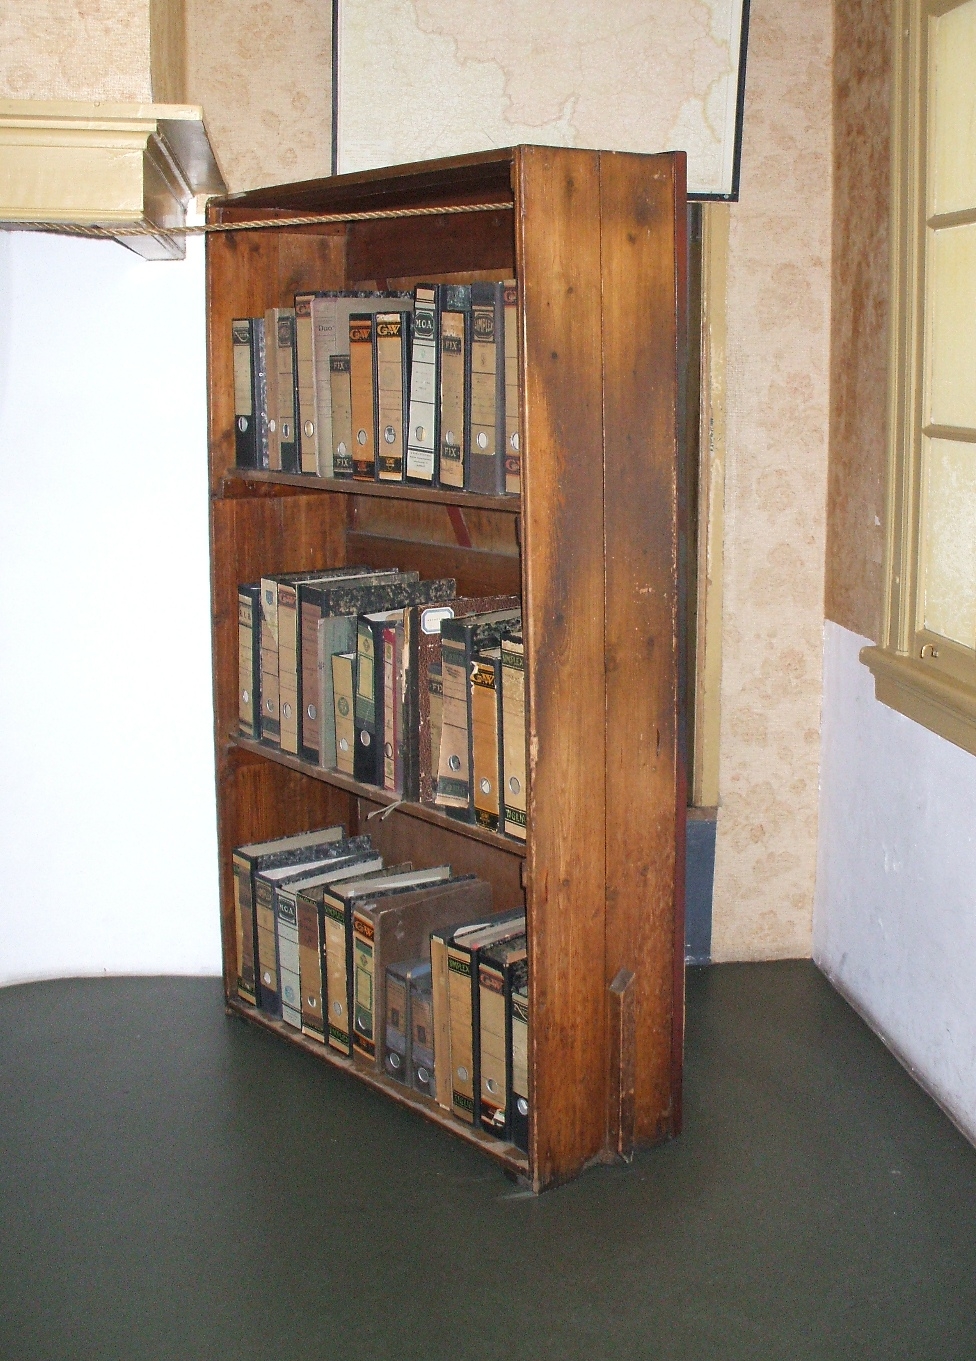 Image of the bookshelf now on display in the Anne Frank house in Amsterdam.